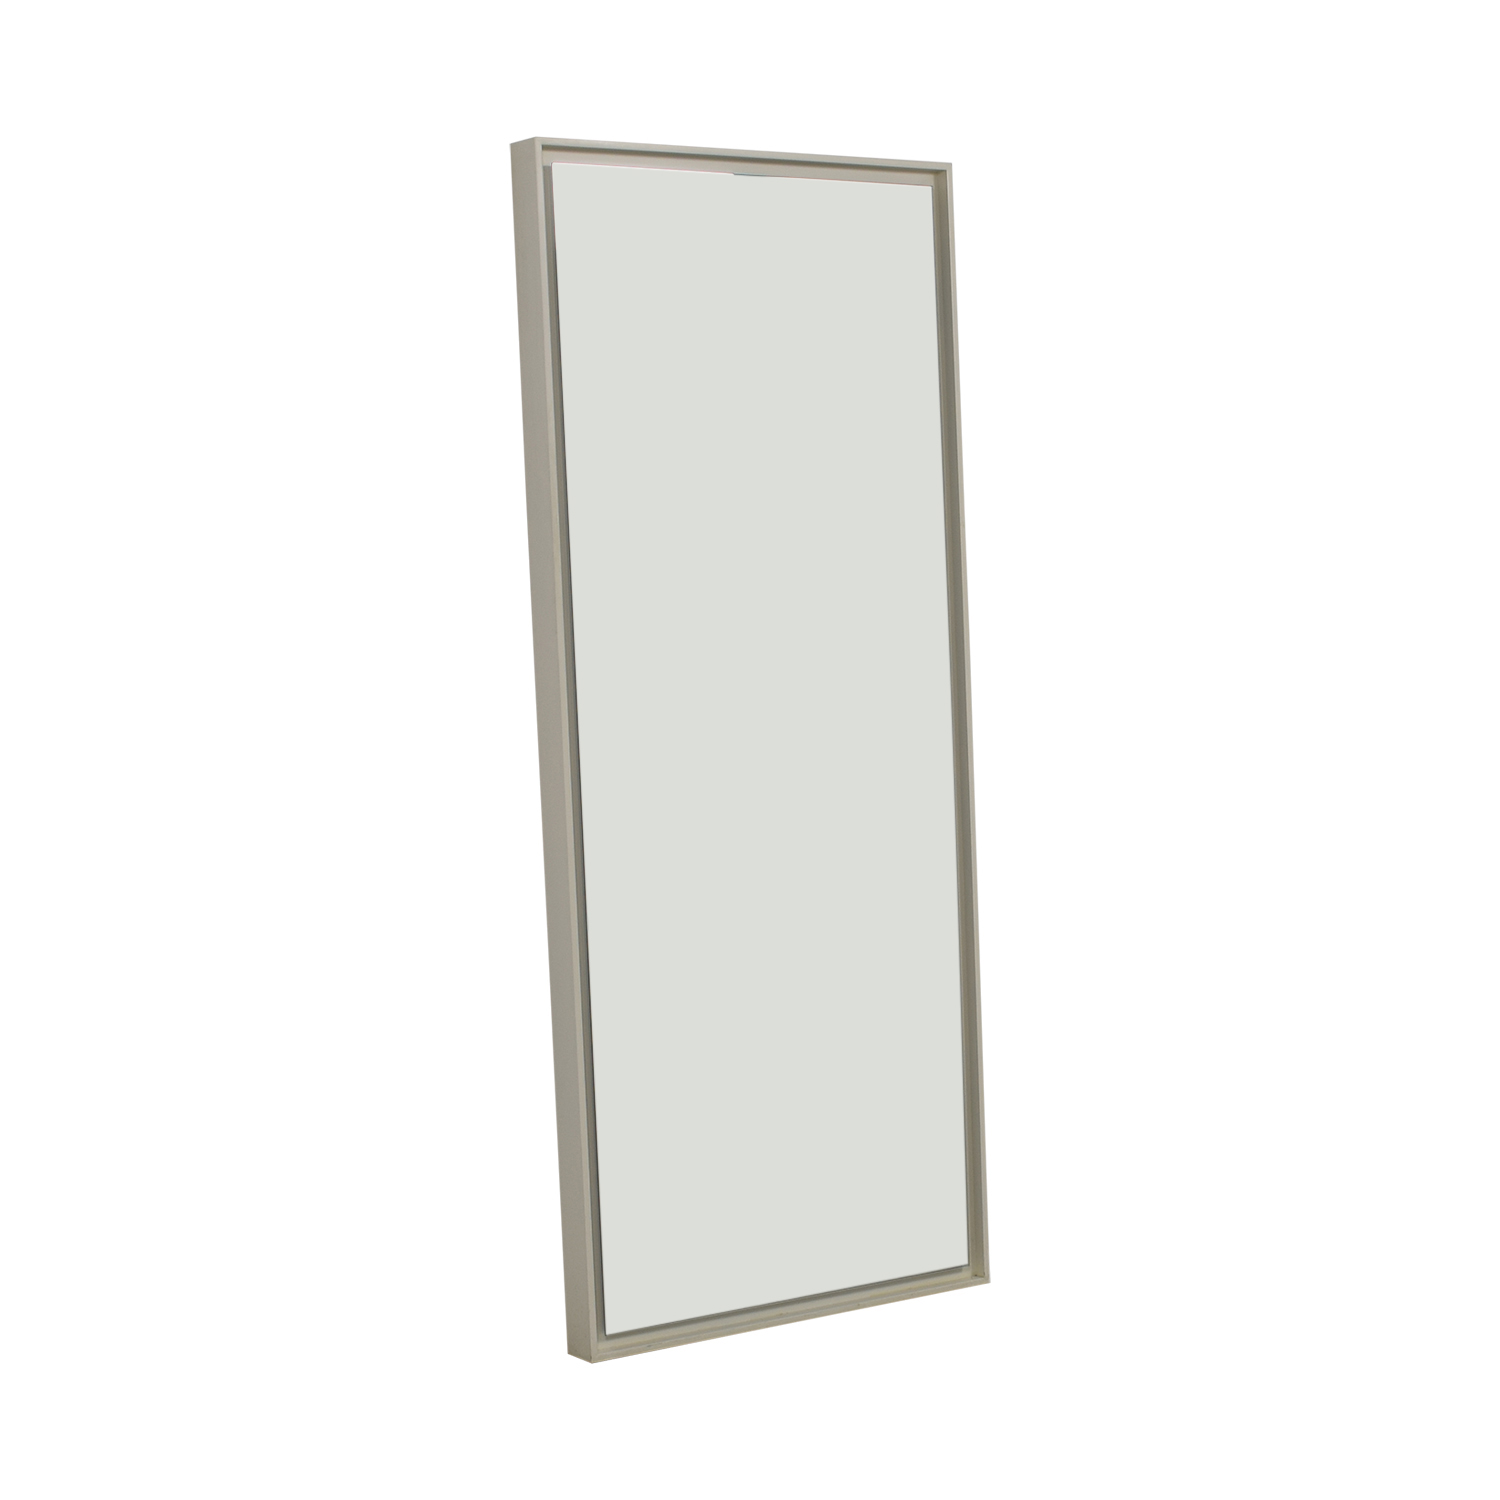 Crate & Barrel White Wall Mirror Crate & Barrel